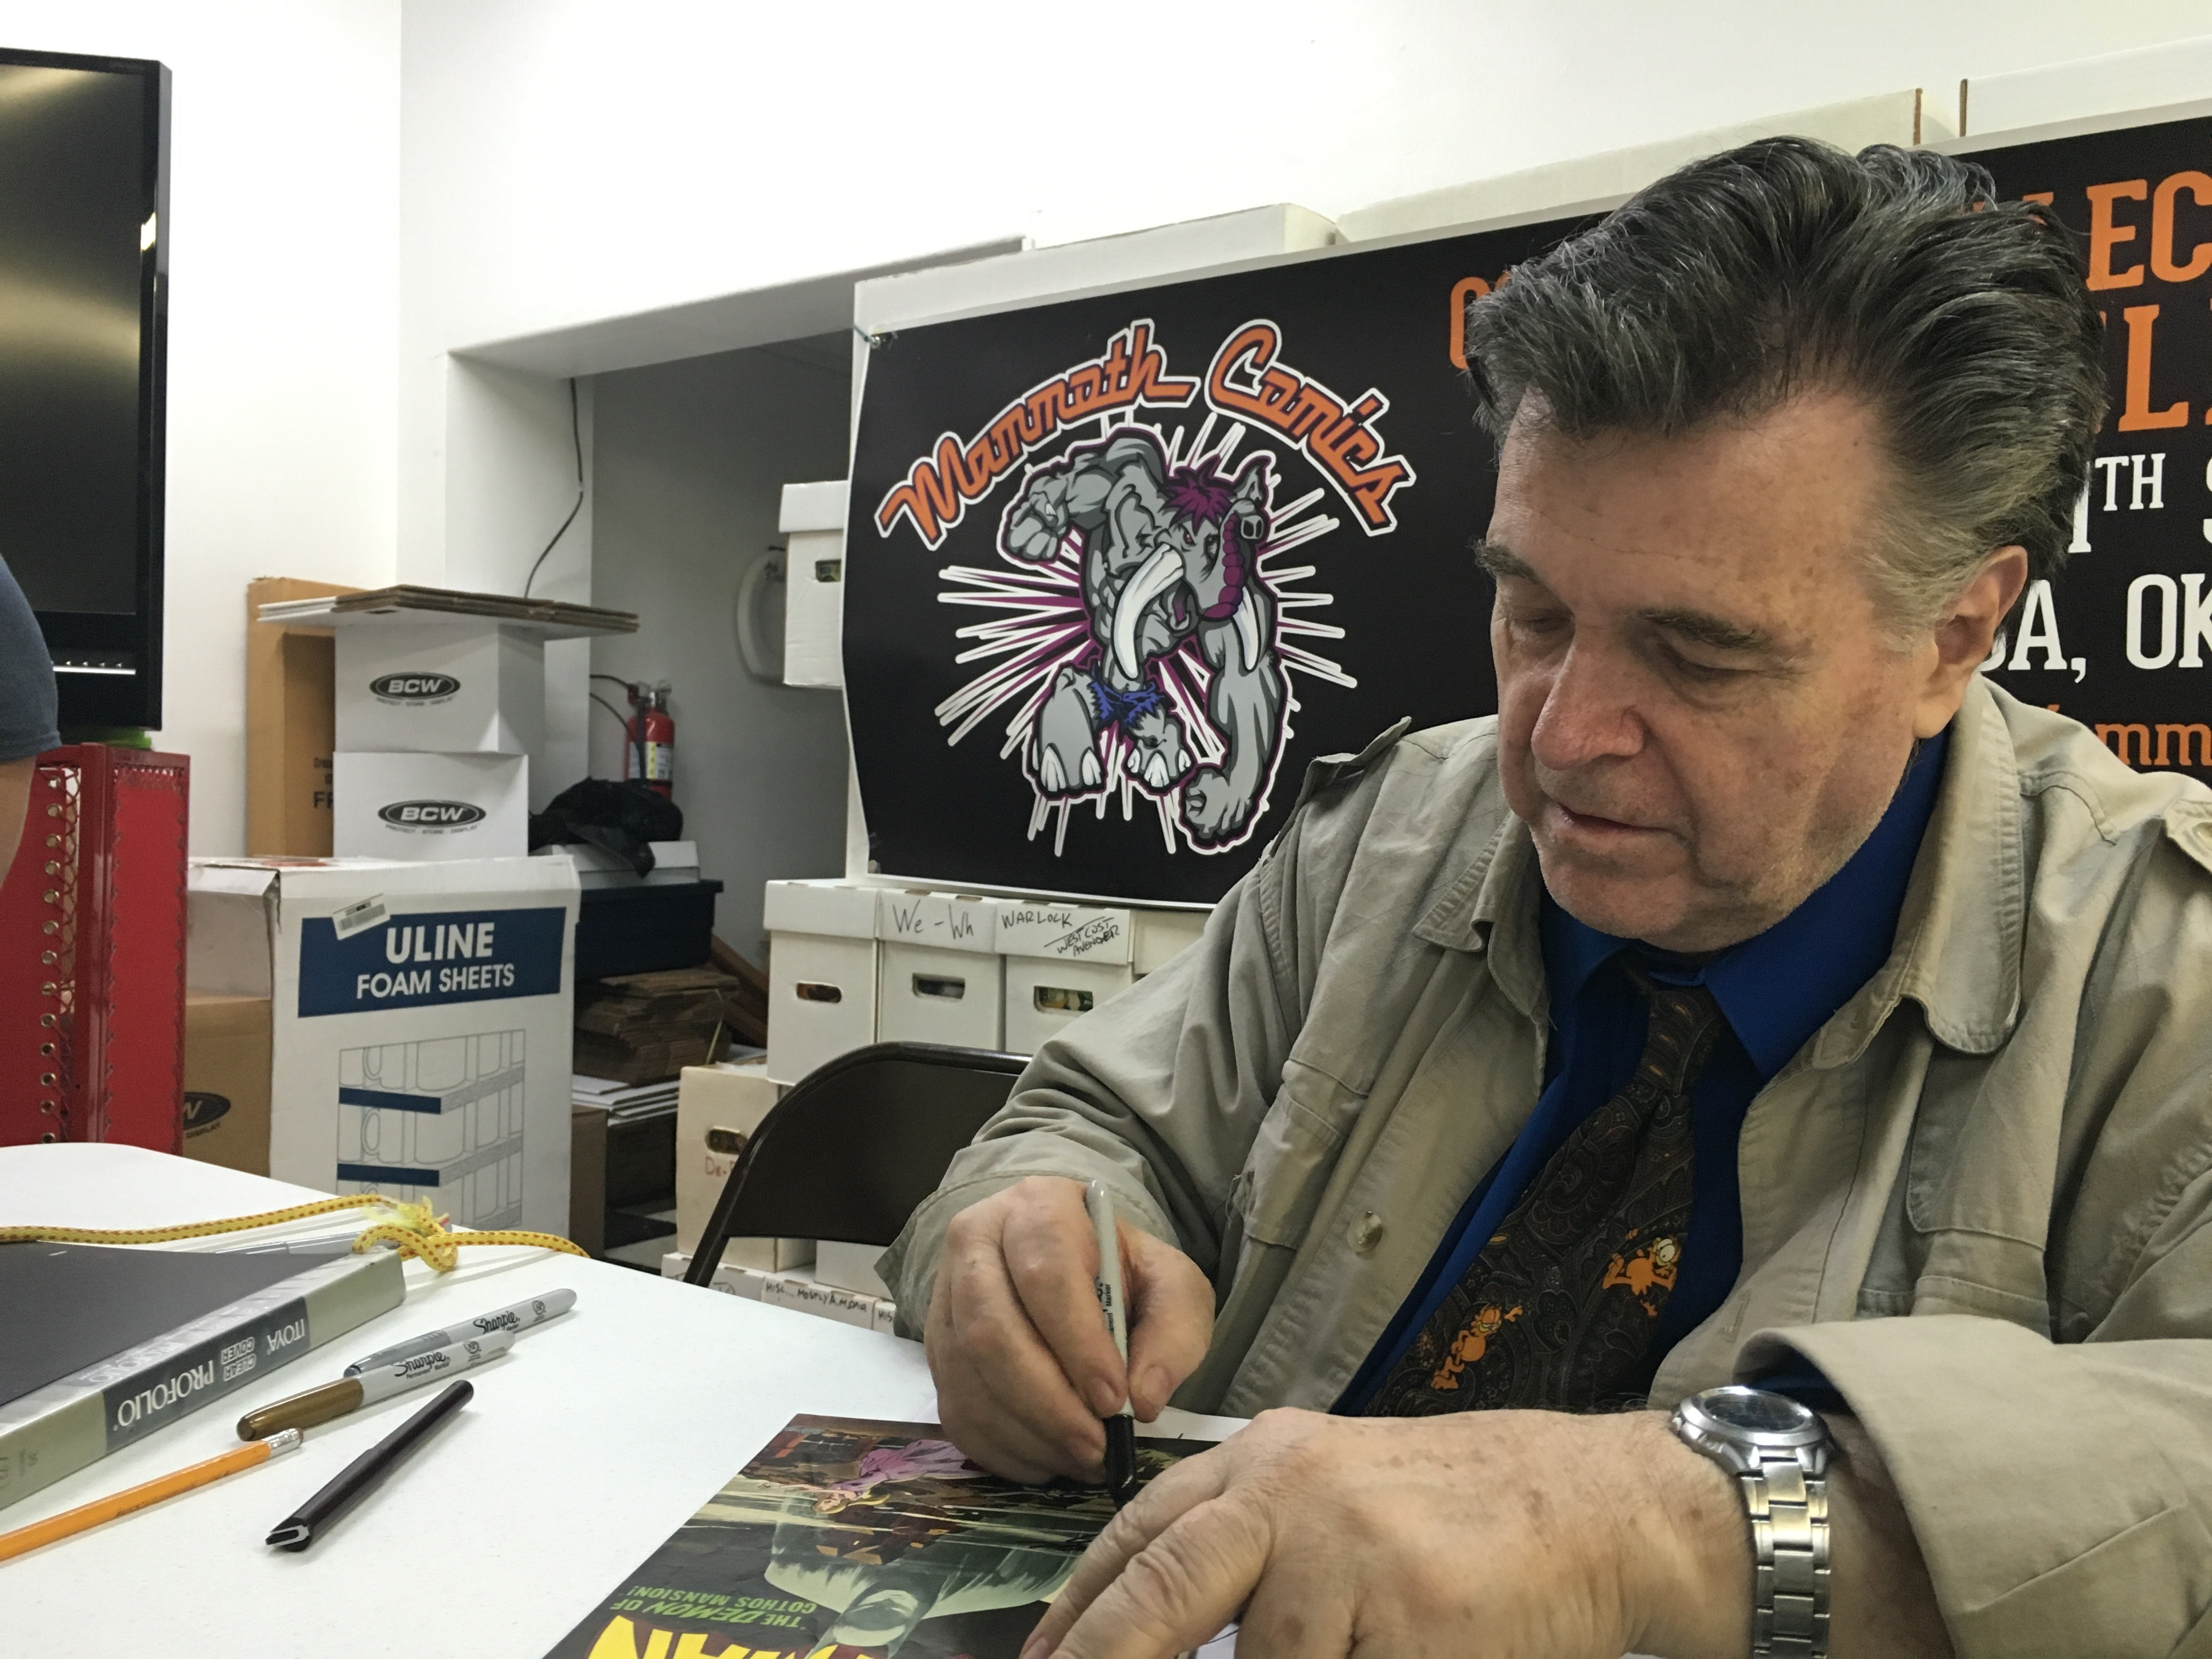 "<span  class=""uc_style_uc_tiles_grid_image_elementor_uc_items_attribute_title"" style=""color:#ffffff;"">Neal Adams at Mammoth Comics</span>"